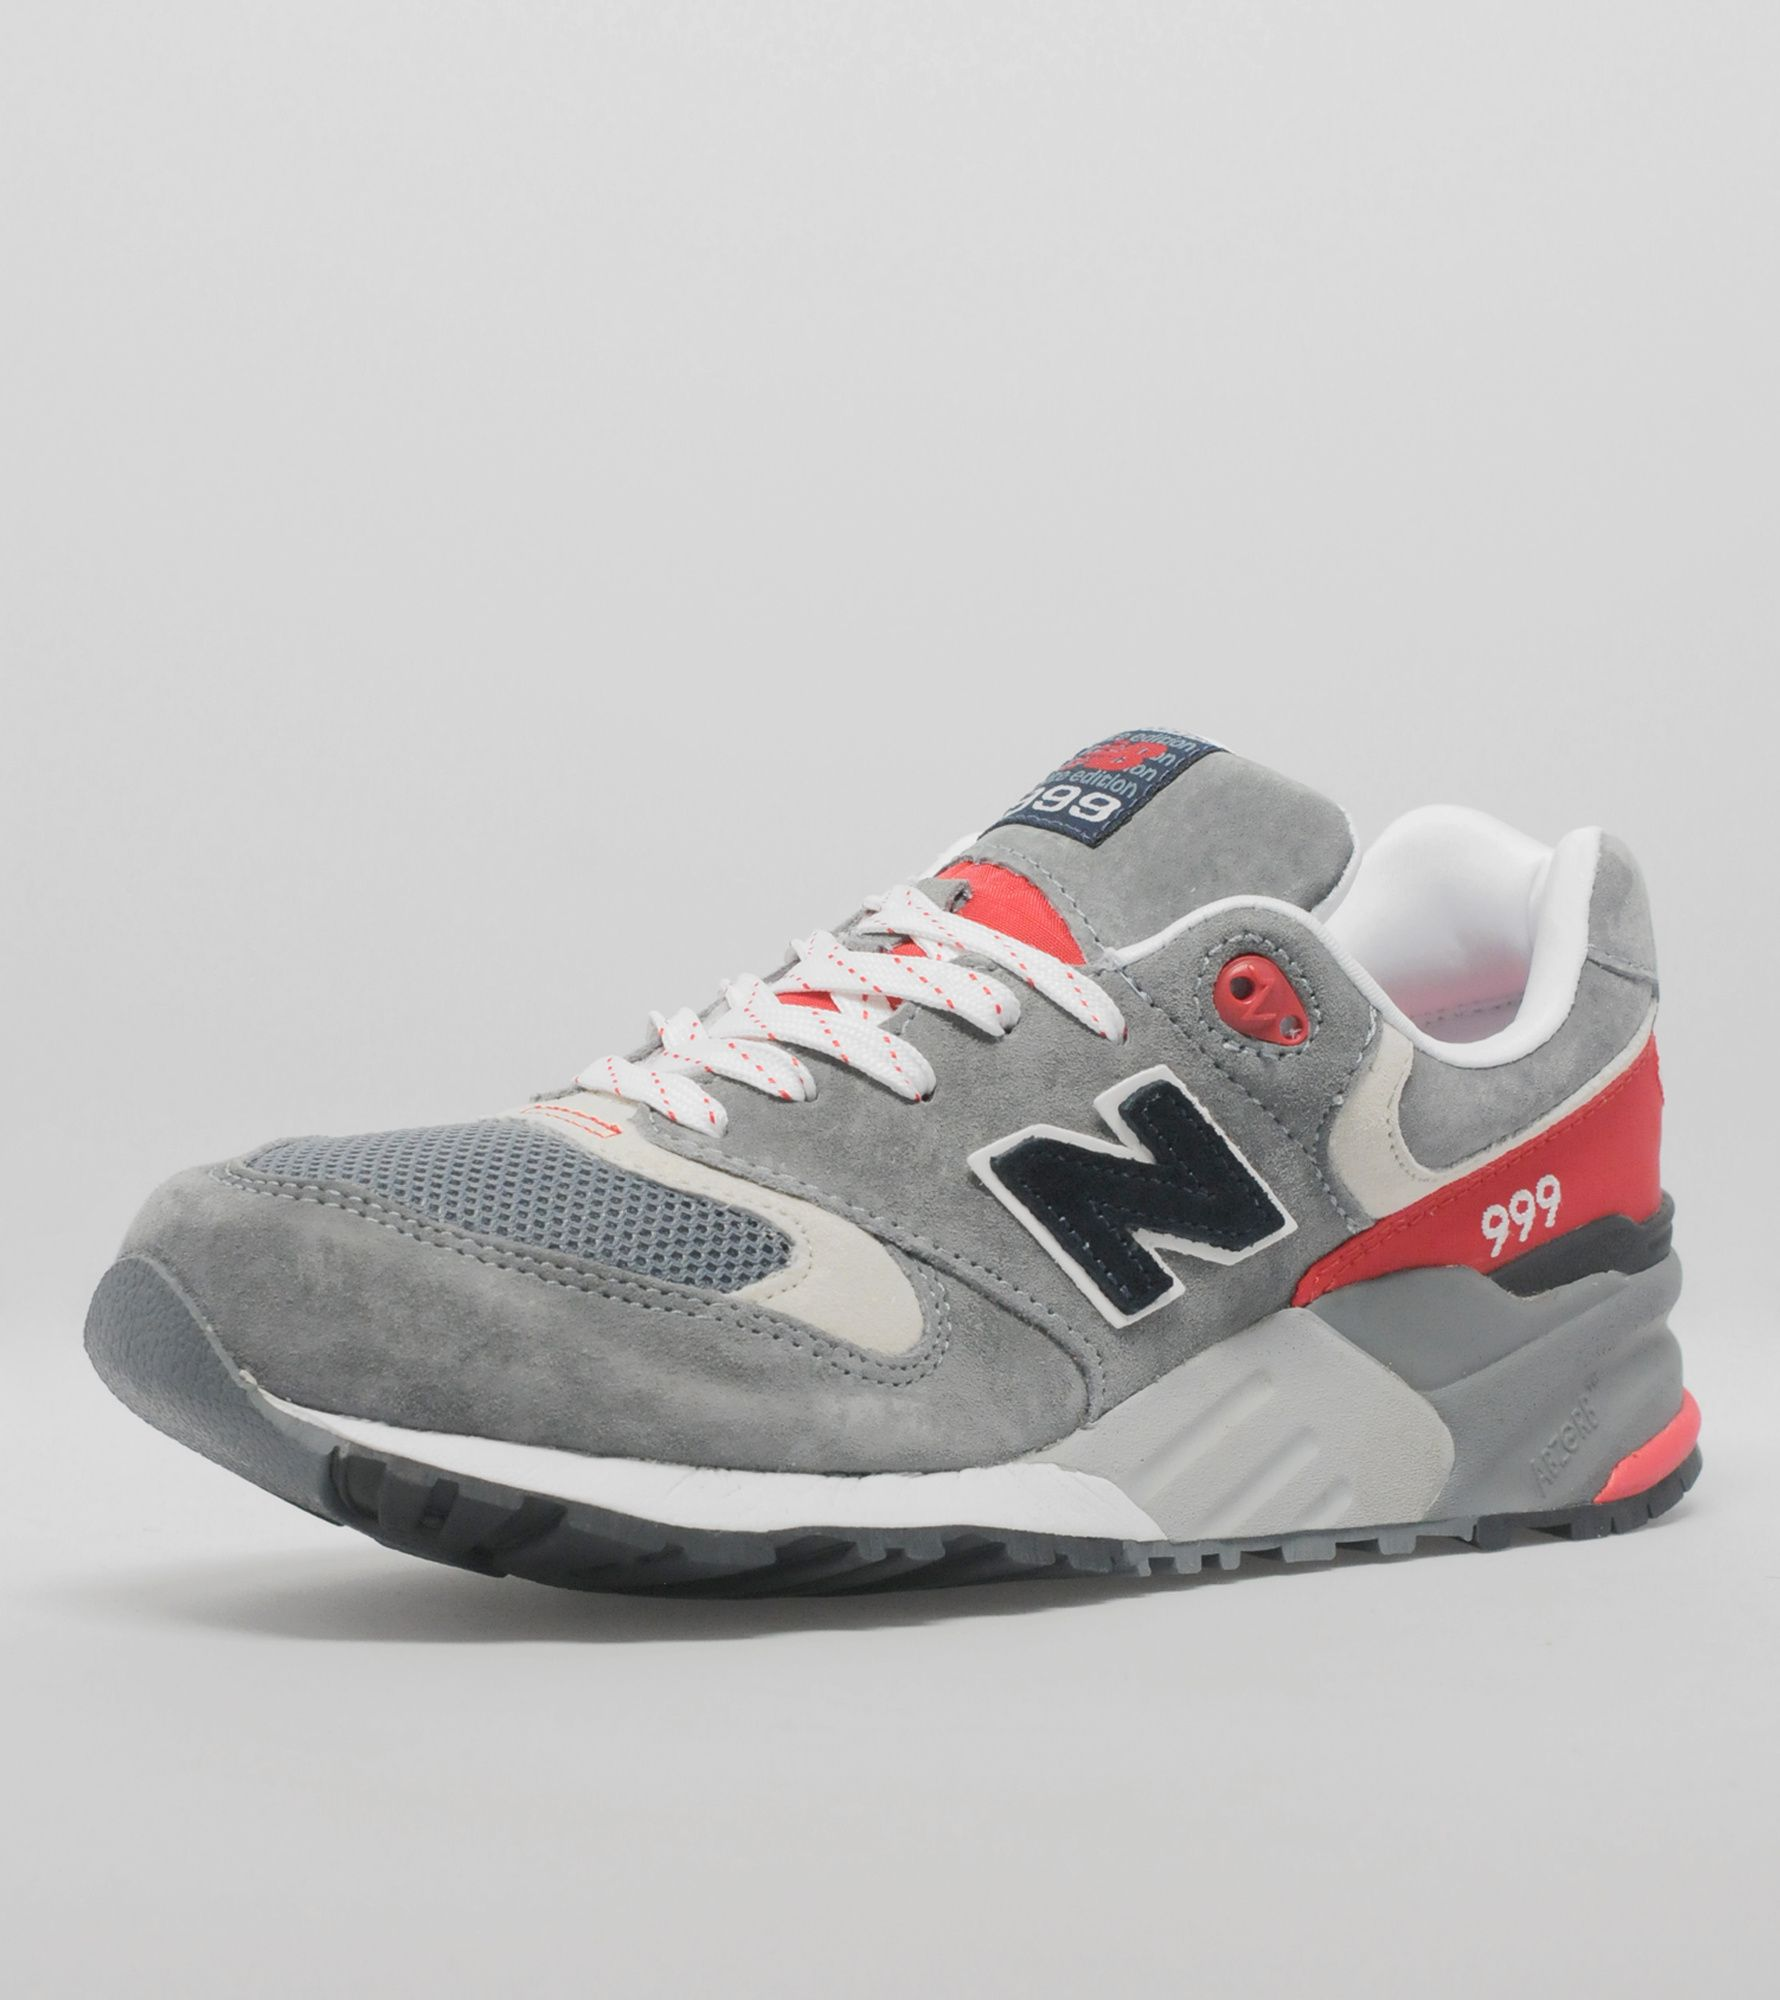 New Balance 999 'Elite Edition' - size? exclusive | Size?